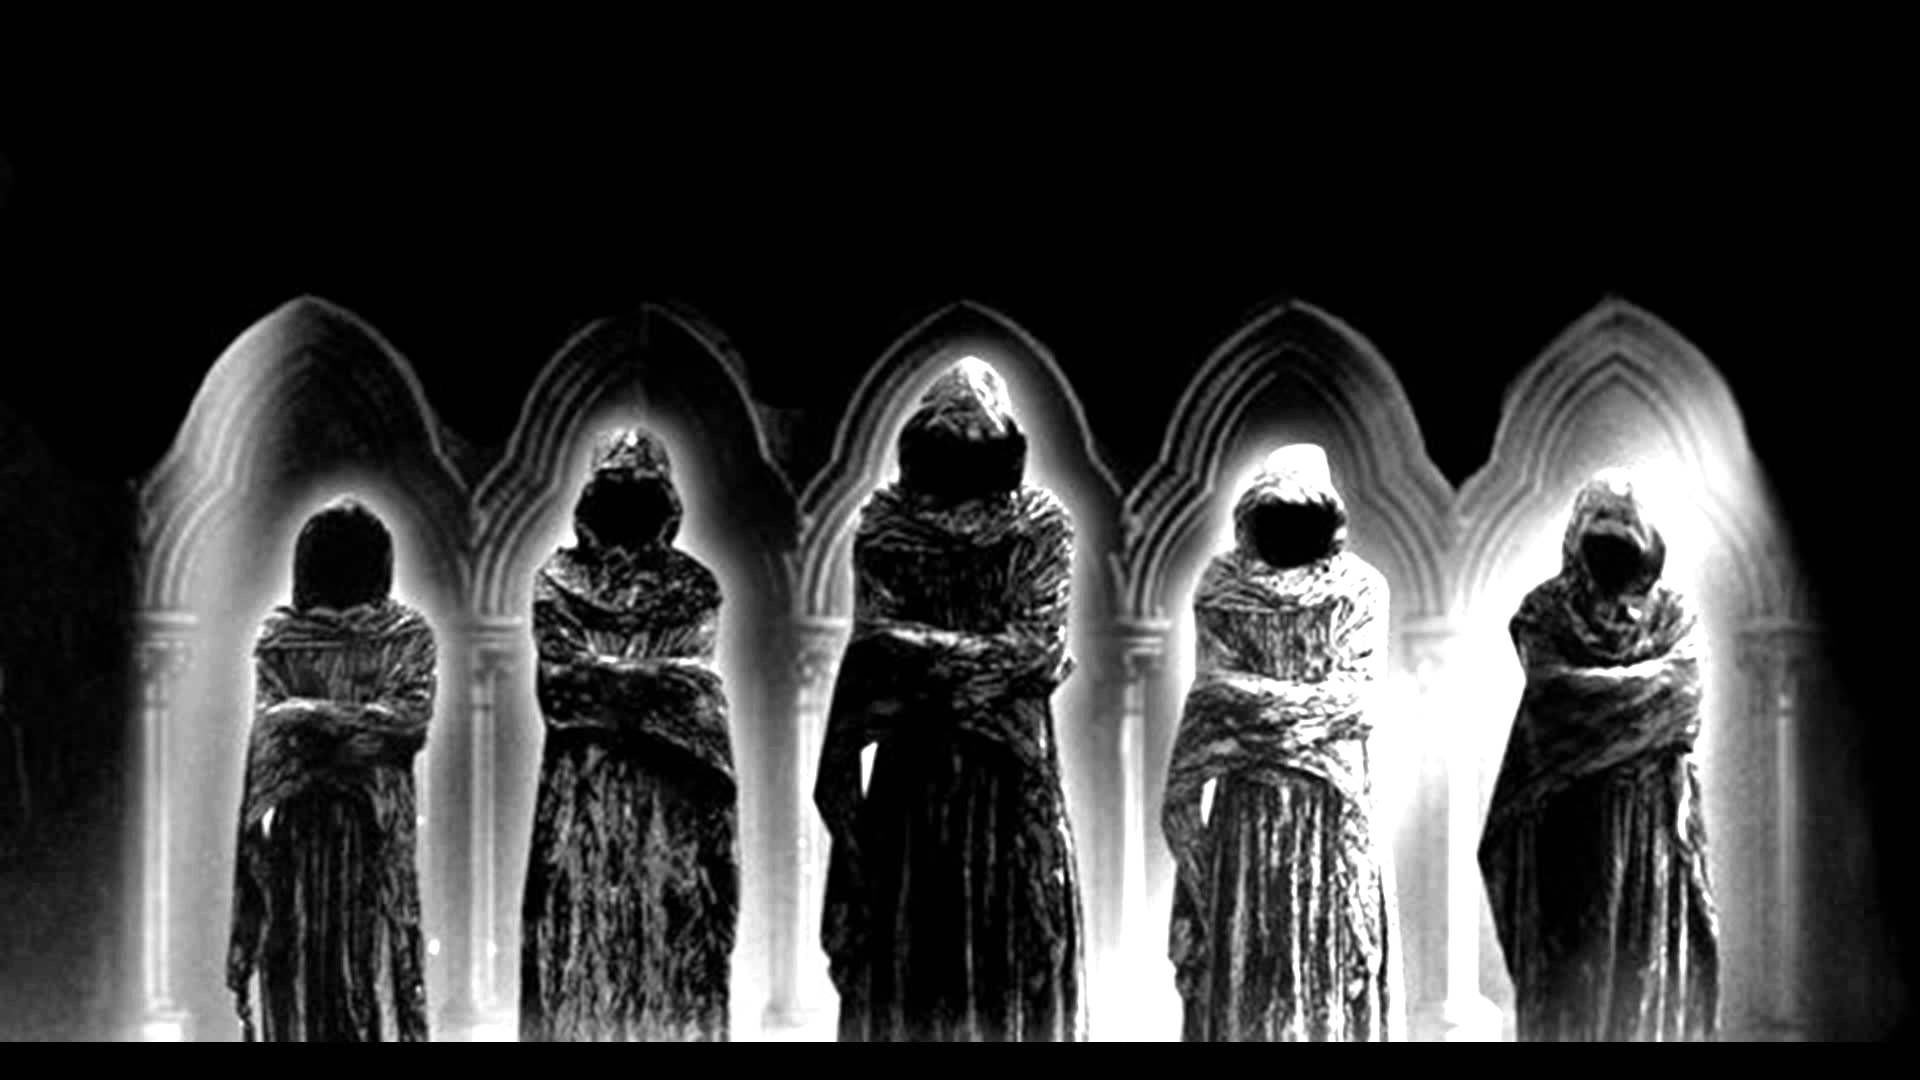 16 Secret Societies That May Control The World